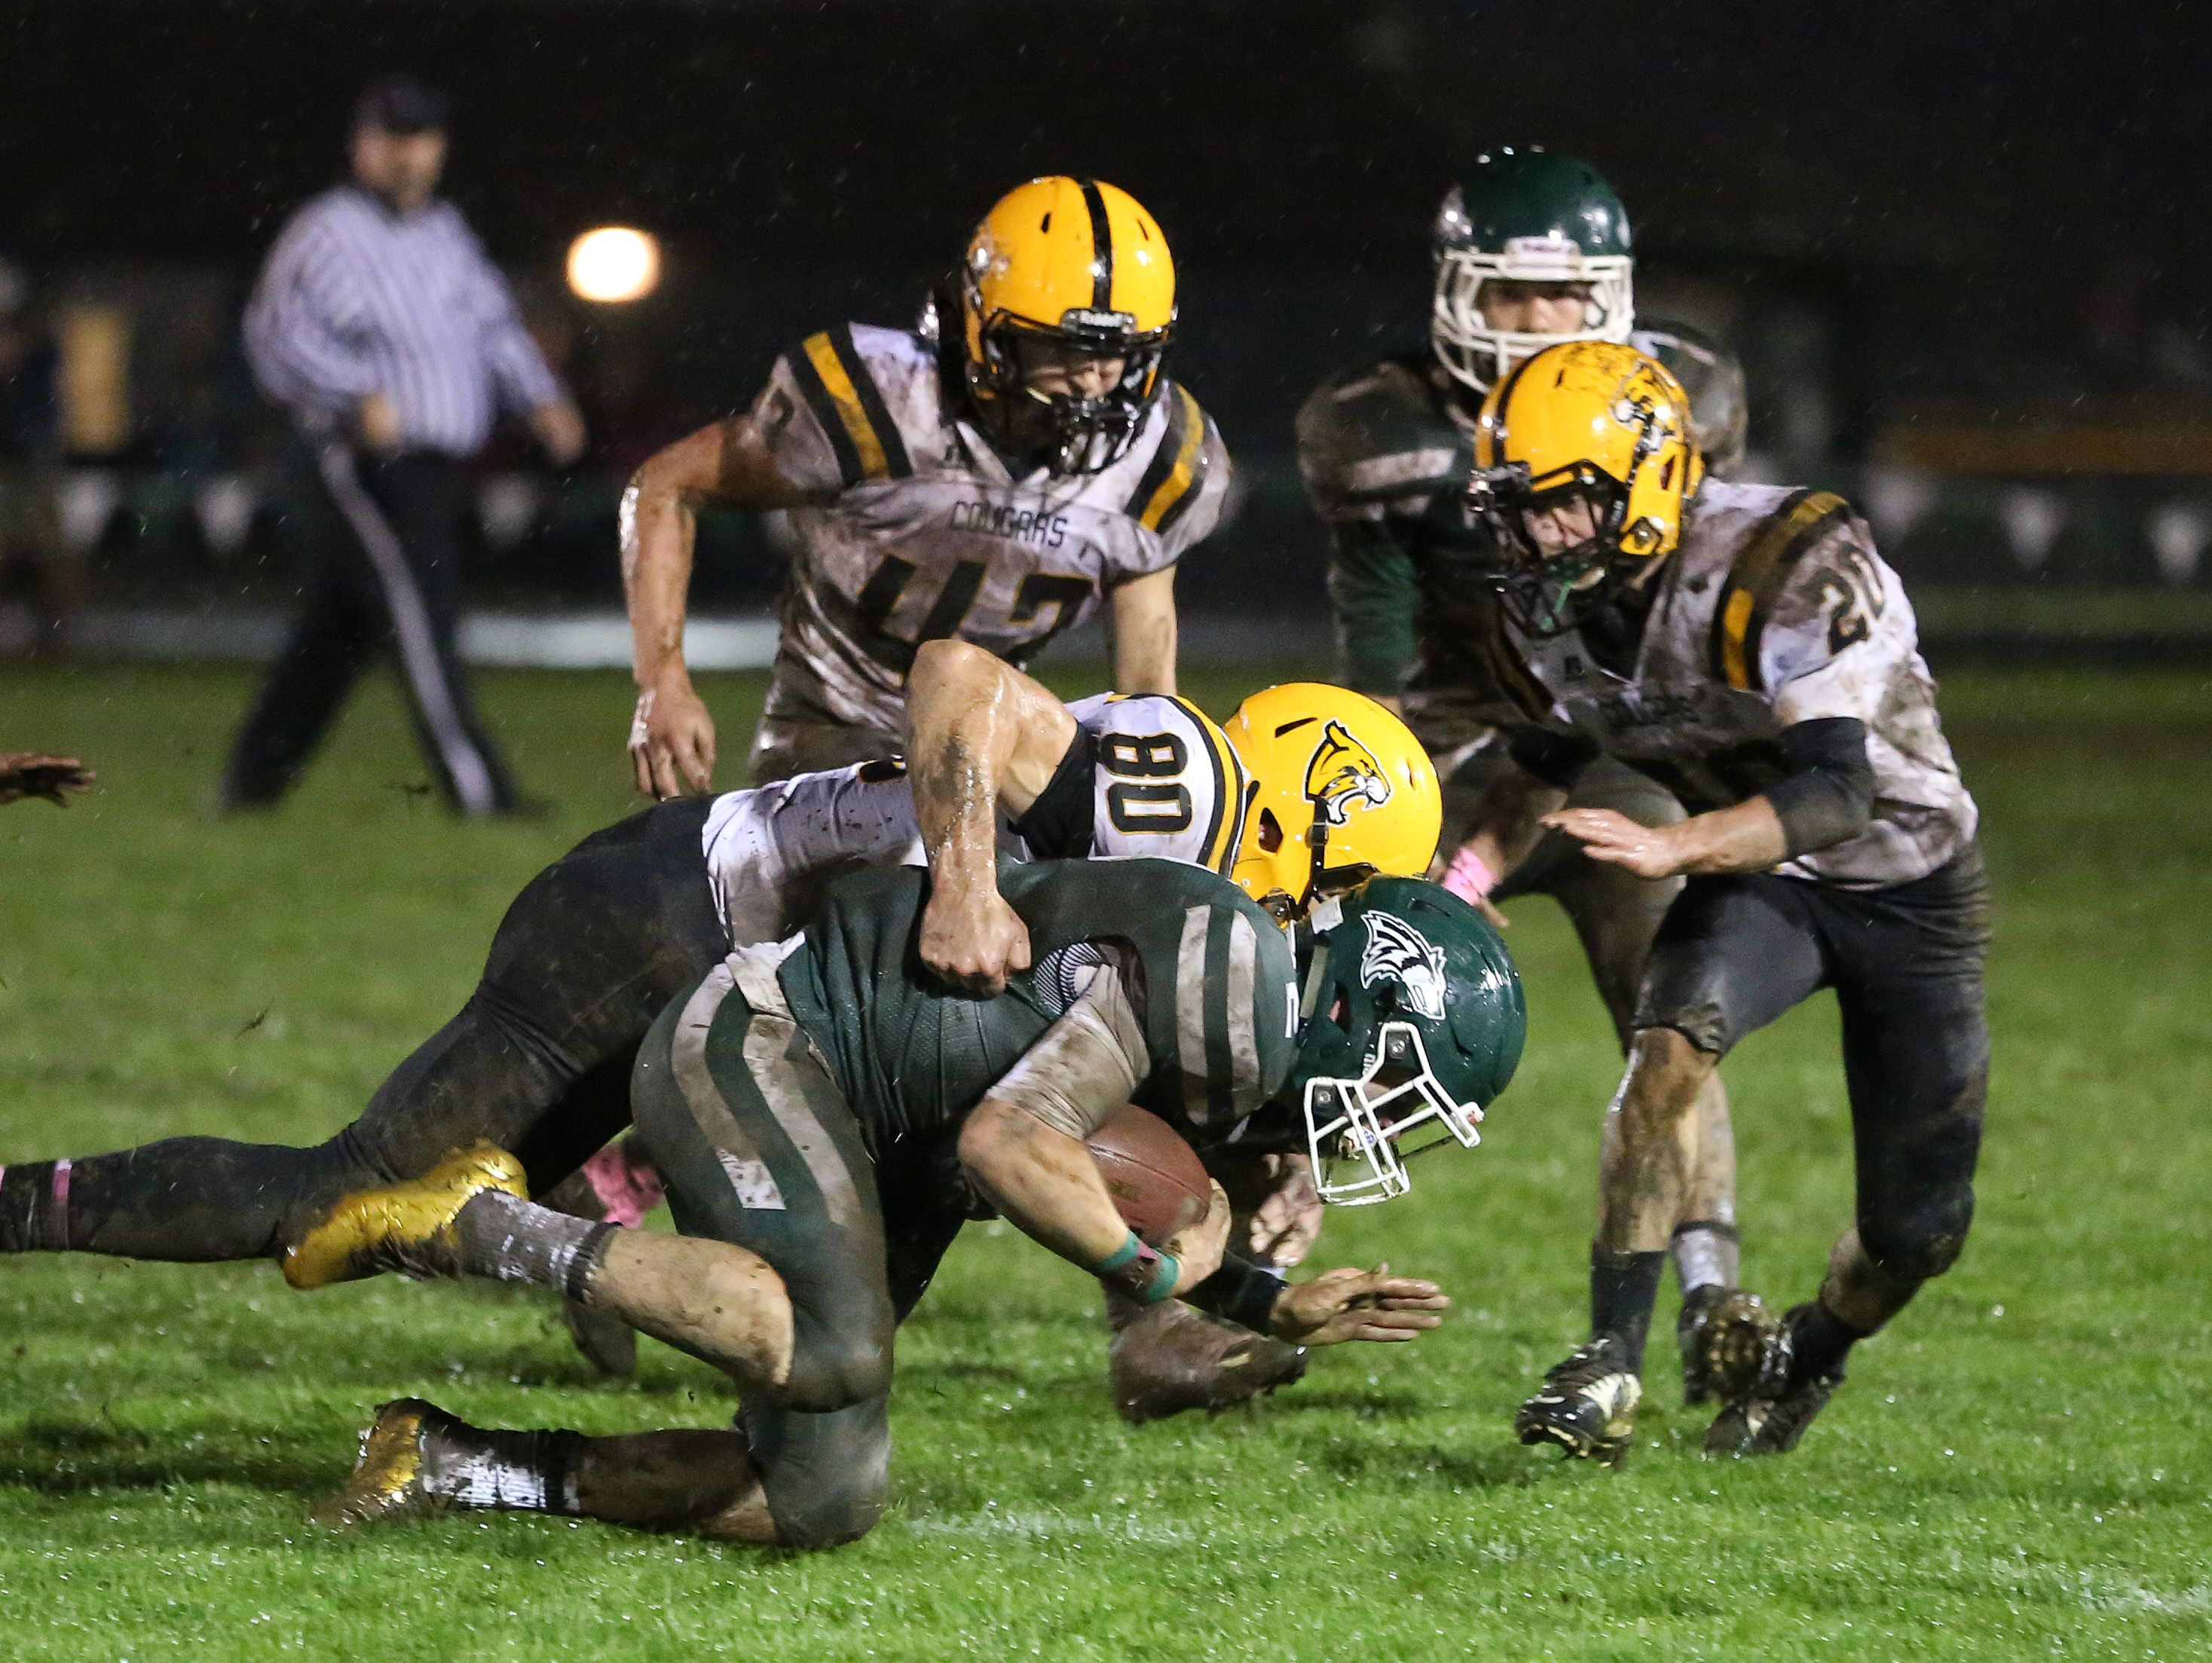 Cascade defenders take down North Marion's Boston Snyder as the Cougars defeat North Marion 12-3 in an Oregon West Conference game on Friday, Oct. 21, 2016. Cascade defeats North Marion 12-3 in an Oregon West Conference game on Friday, Oct. 21, 2016.